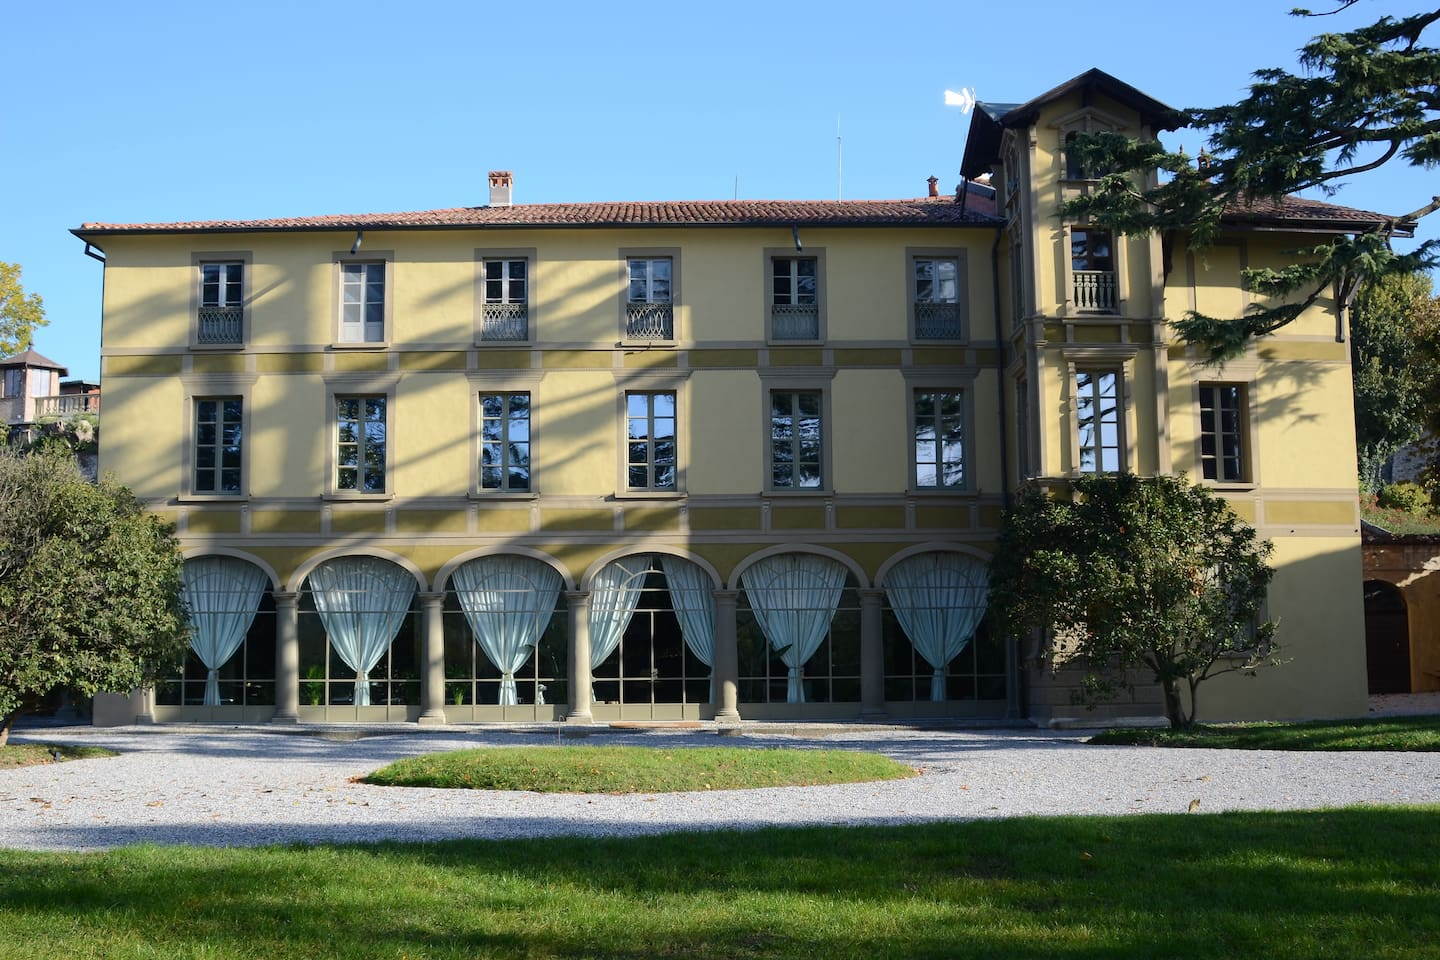 Villa Biondelli an 11 bedroom boutique Agrirelais in the heart of Franciacorta